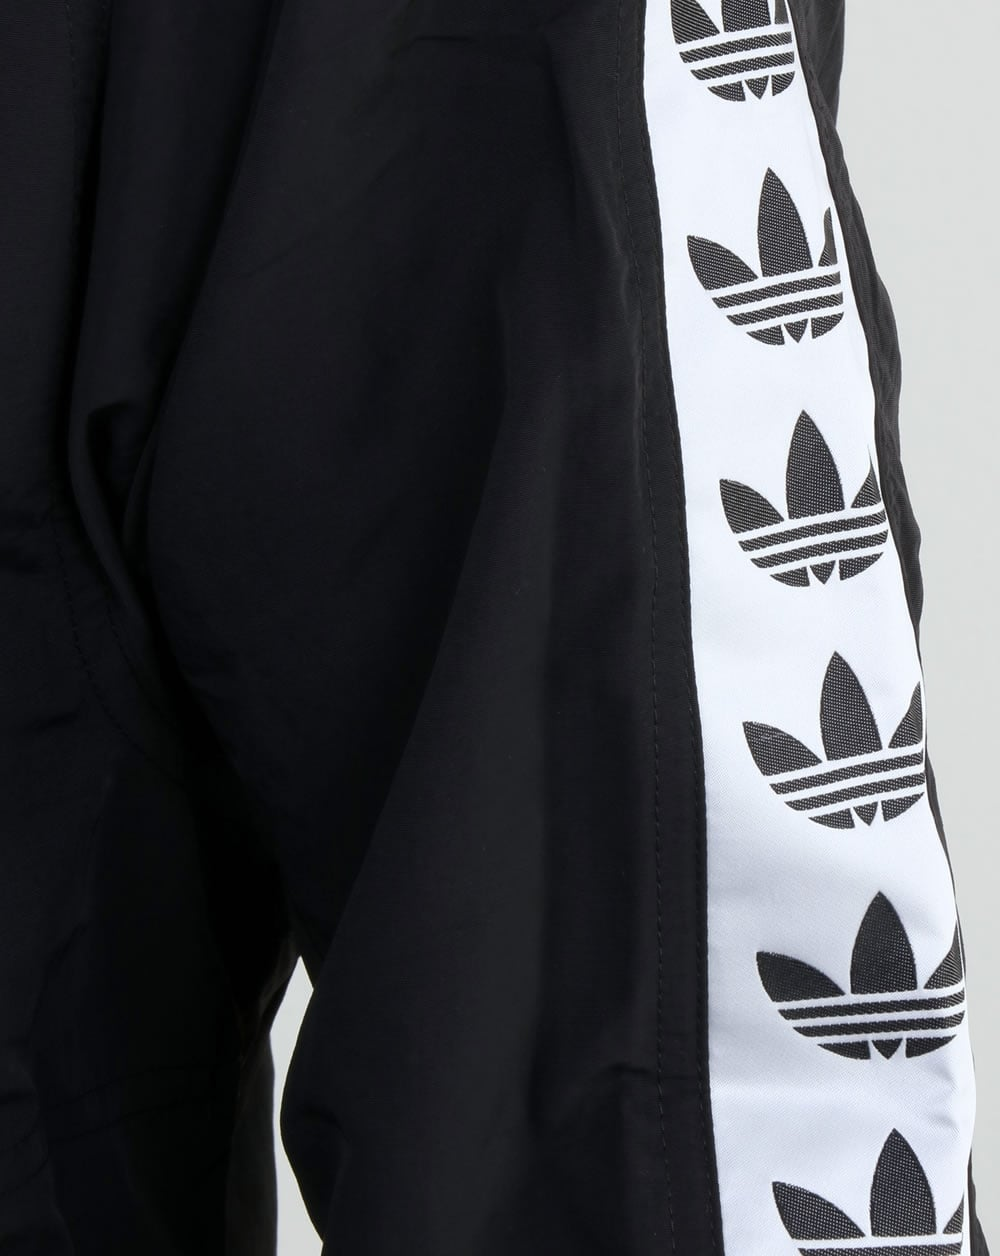 Adidas Originals Tnt Tape Wind Jacket Black White Rain